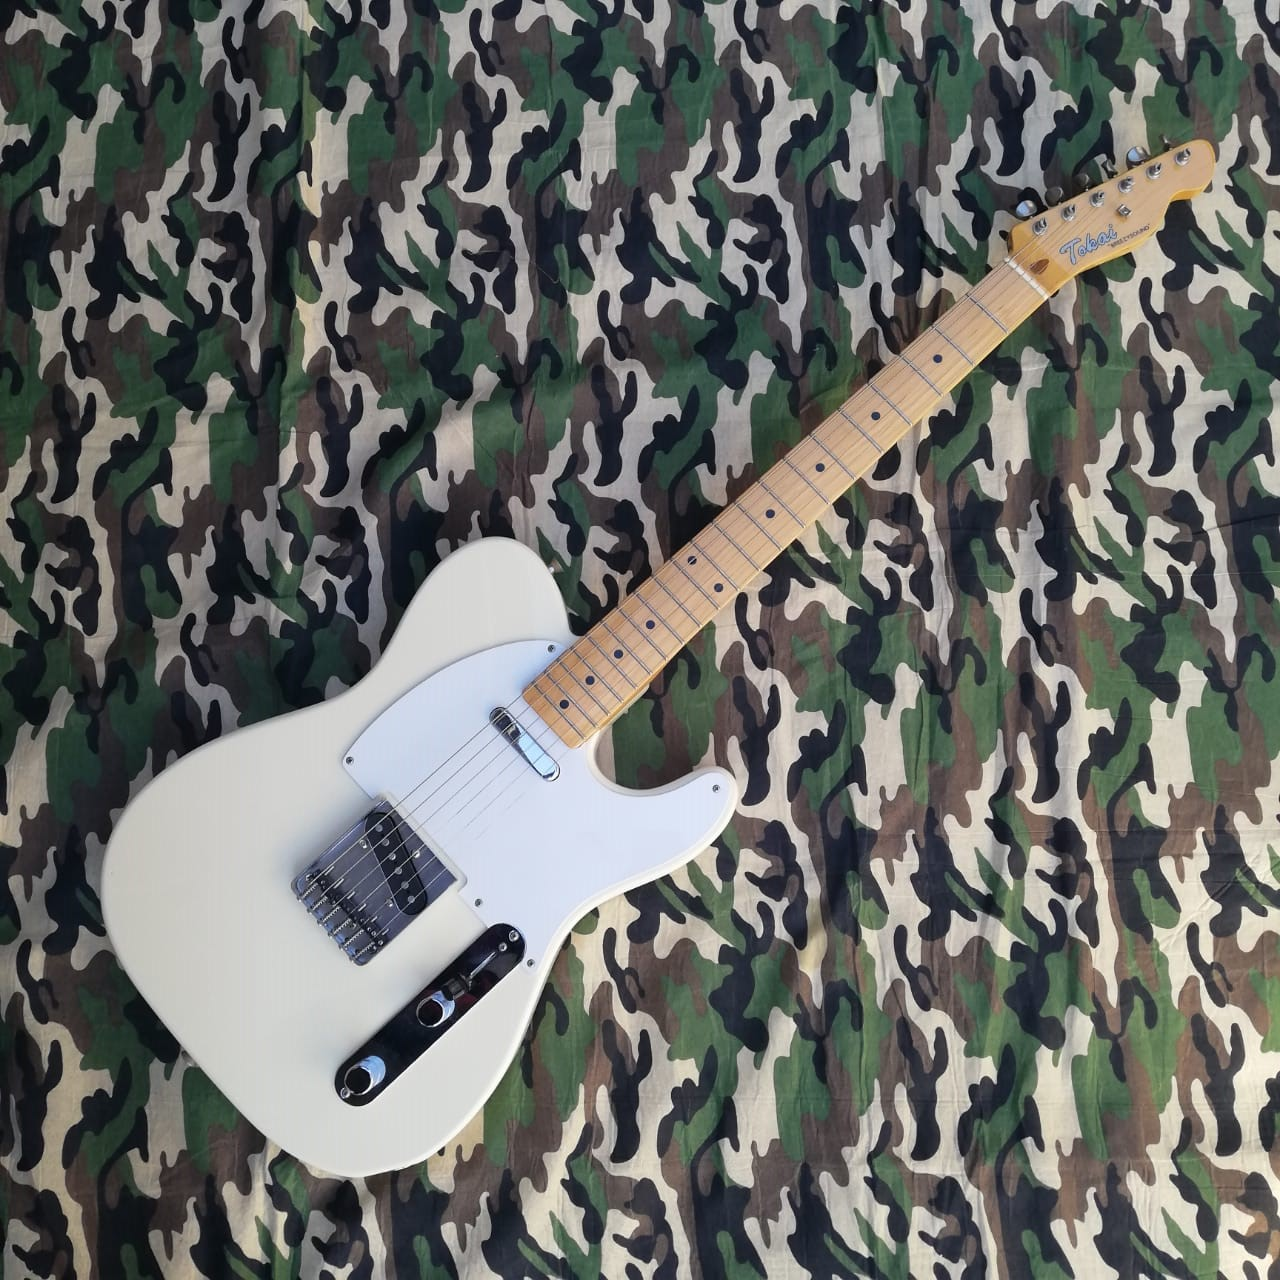 SALE or TRADE: Tokai Telecaster Electric Guitar | Junk Mail